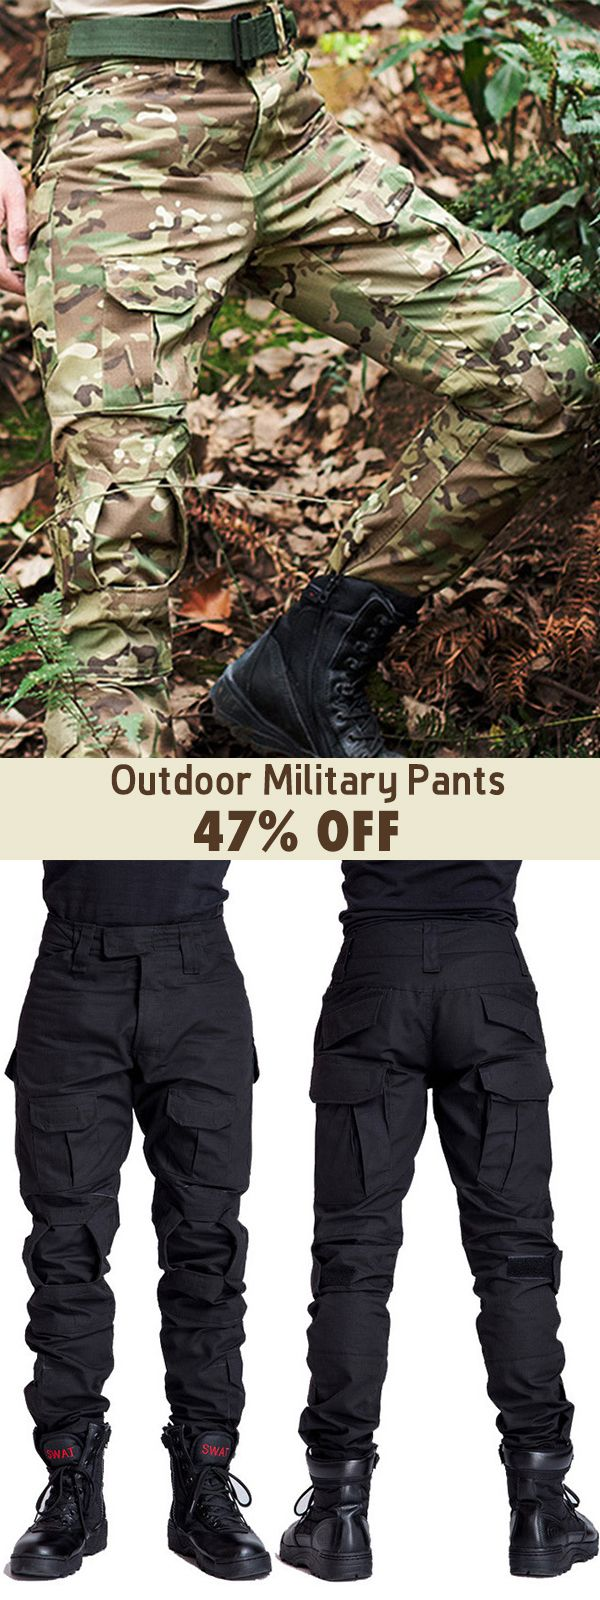 Mens Outdoor Military Tactical pants Camo Printing Breathable Wear-resistant Cas…